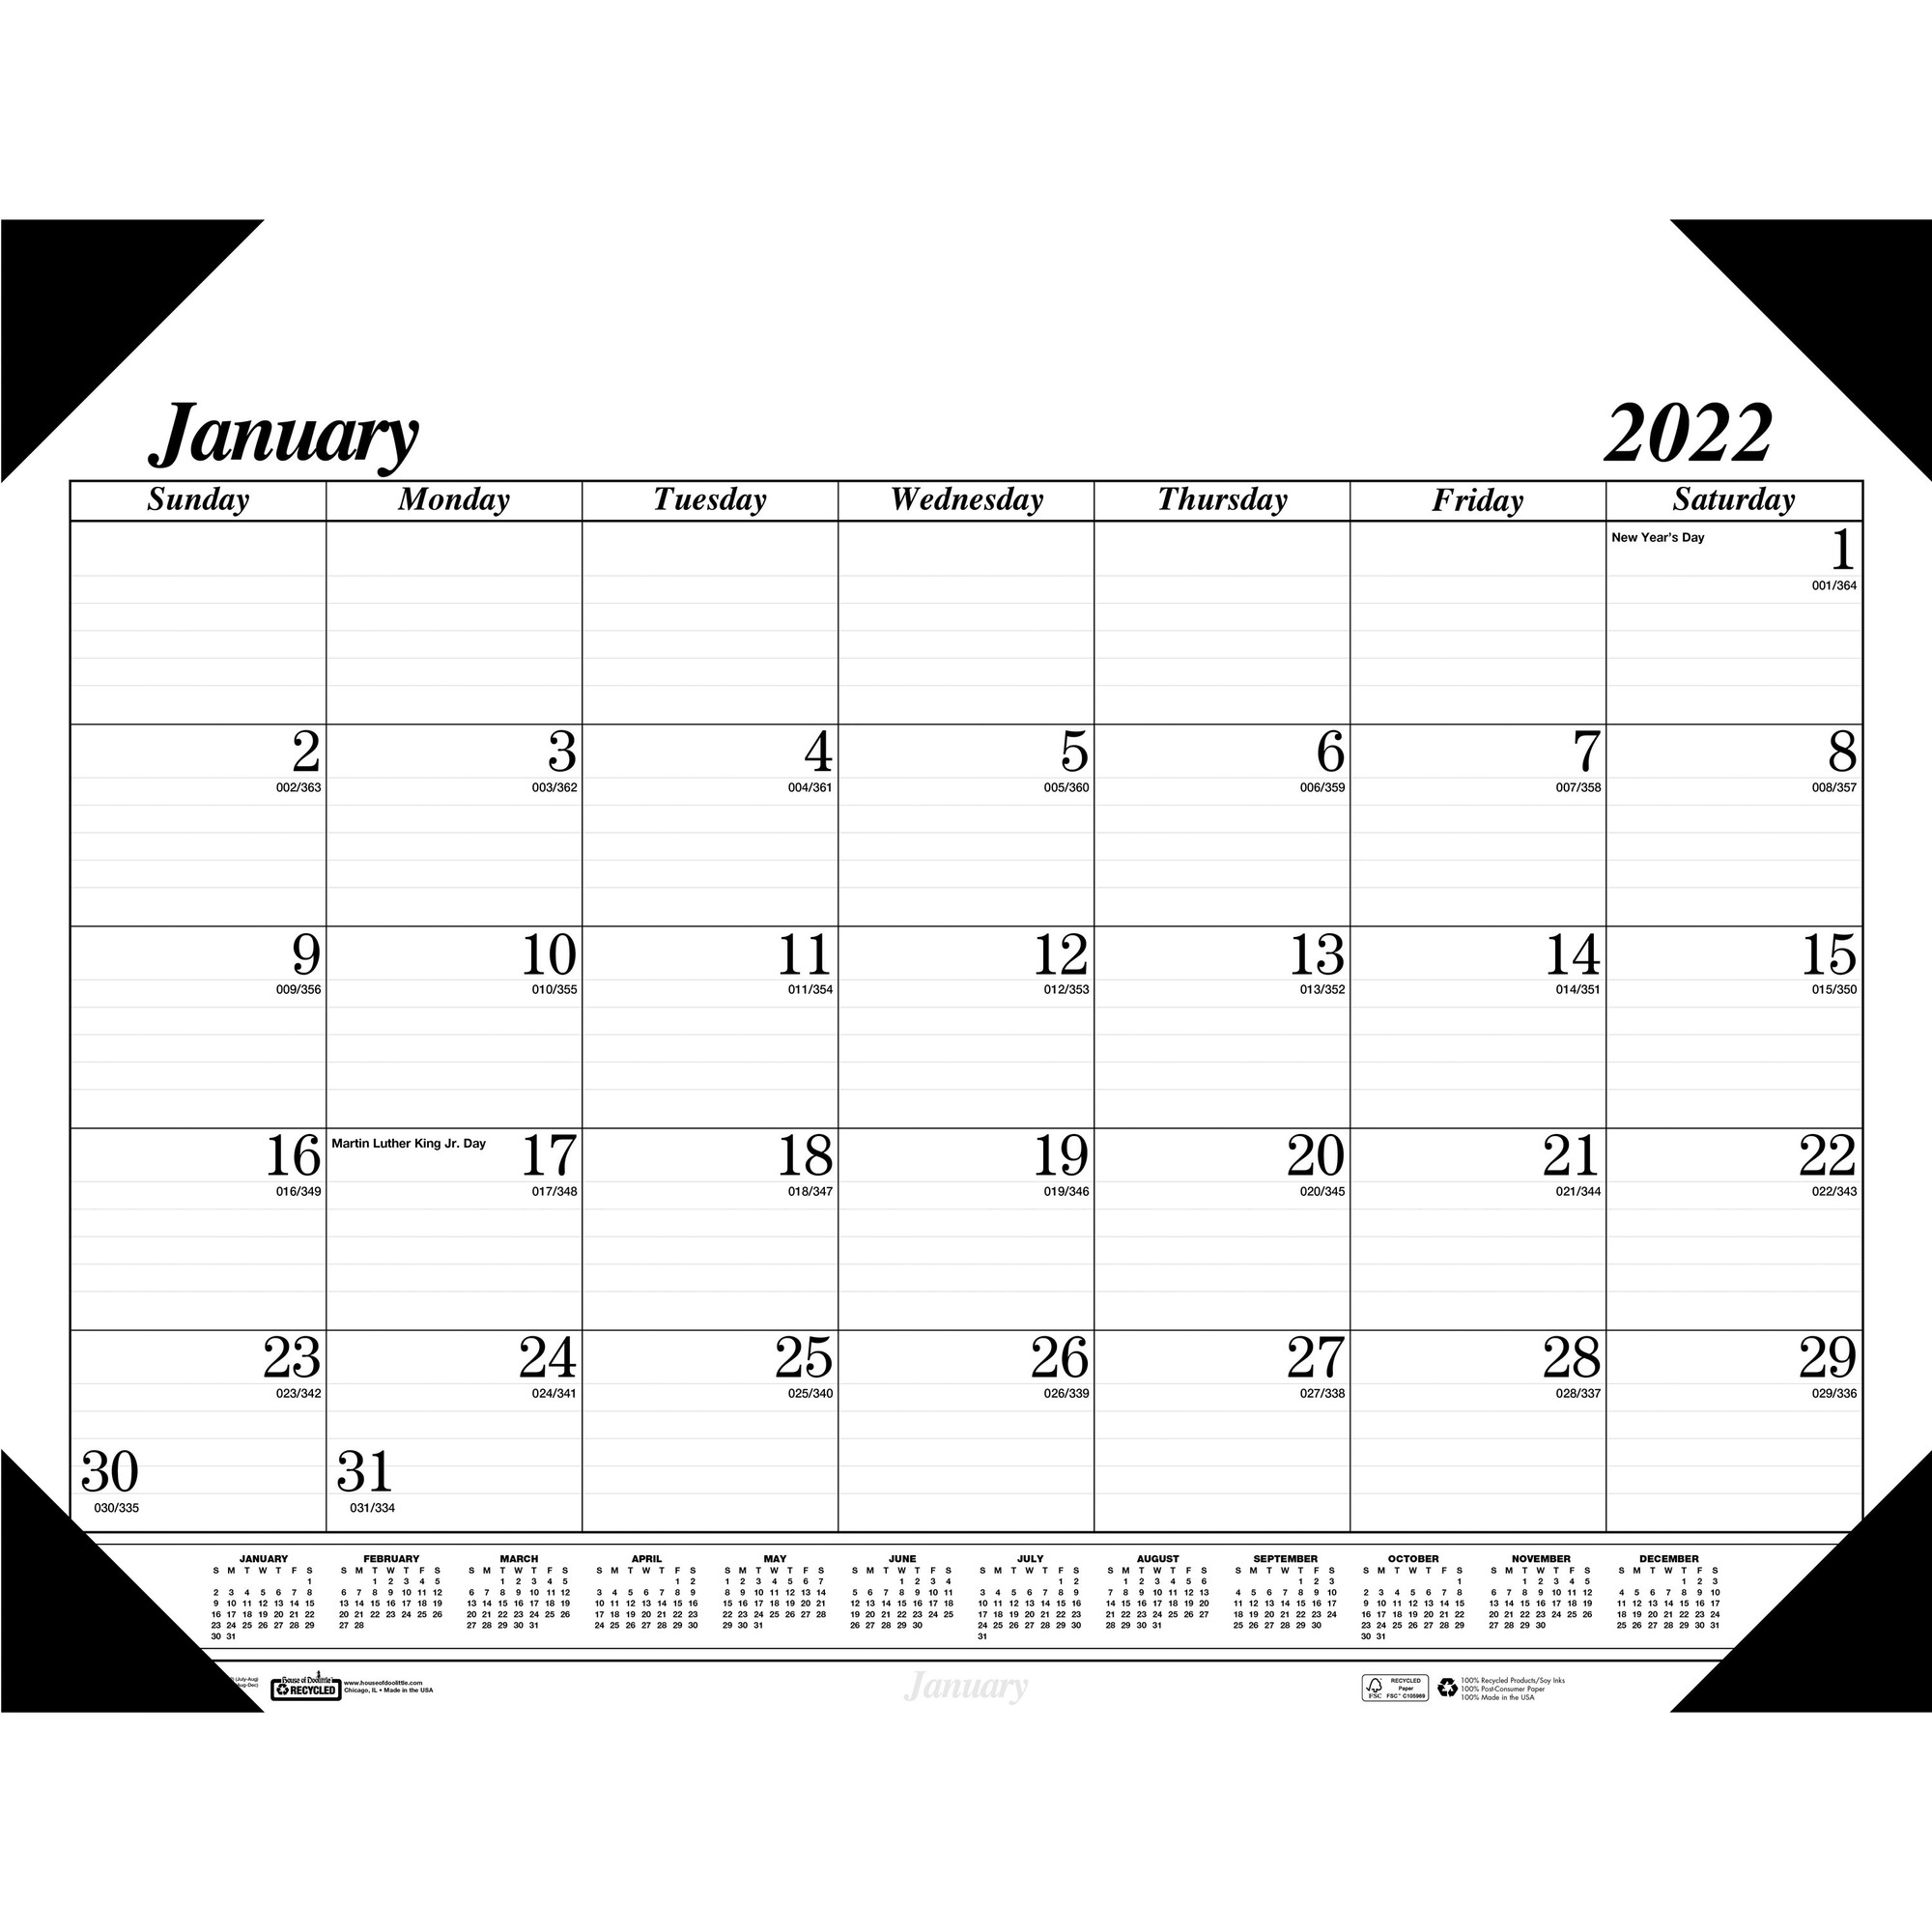 At-A-Glance Dayminder Monthly Planner - Julian Dates with regard to 2022 Calendar With Julian Dates Printable